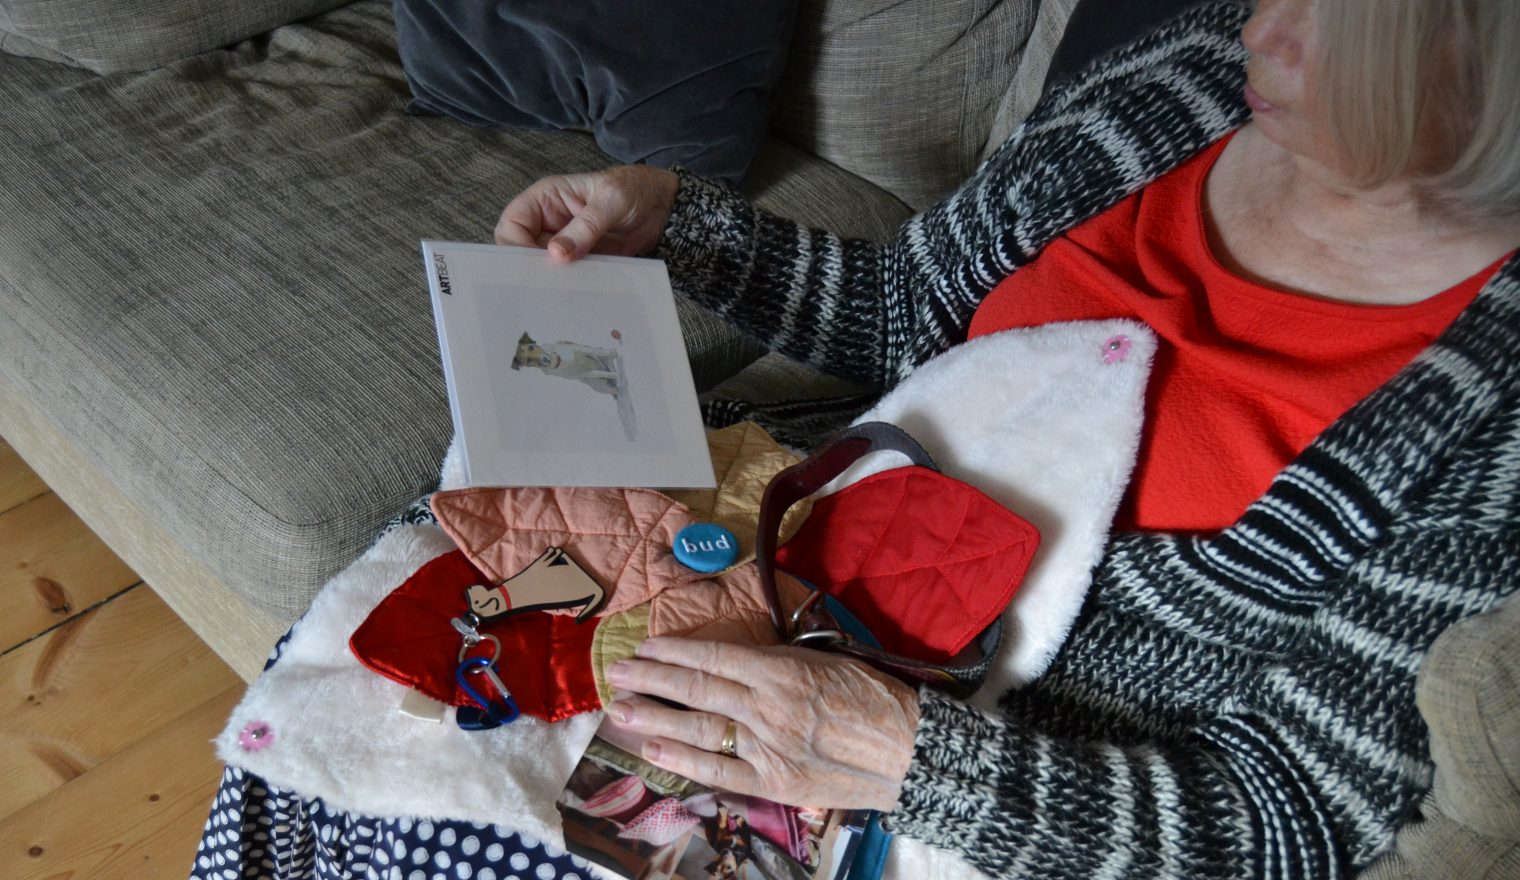 A woman sat on a sofa looking at a picture of a dog from her Bud sensory cushion